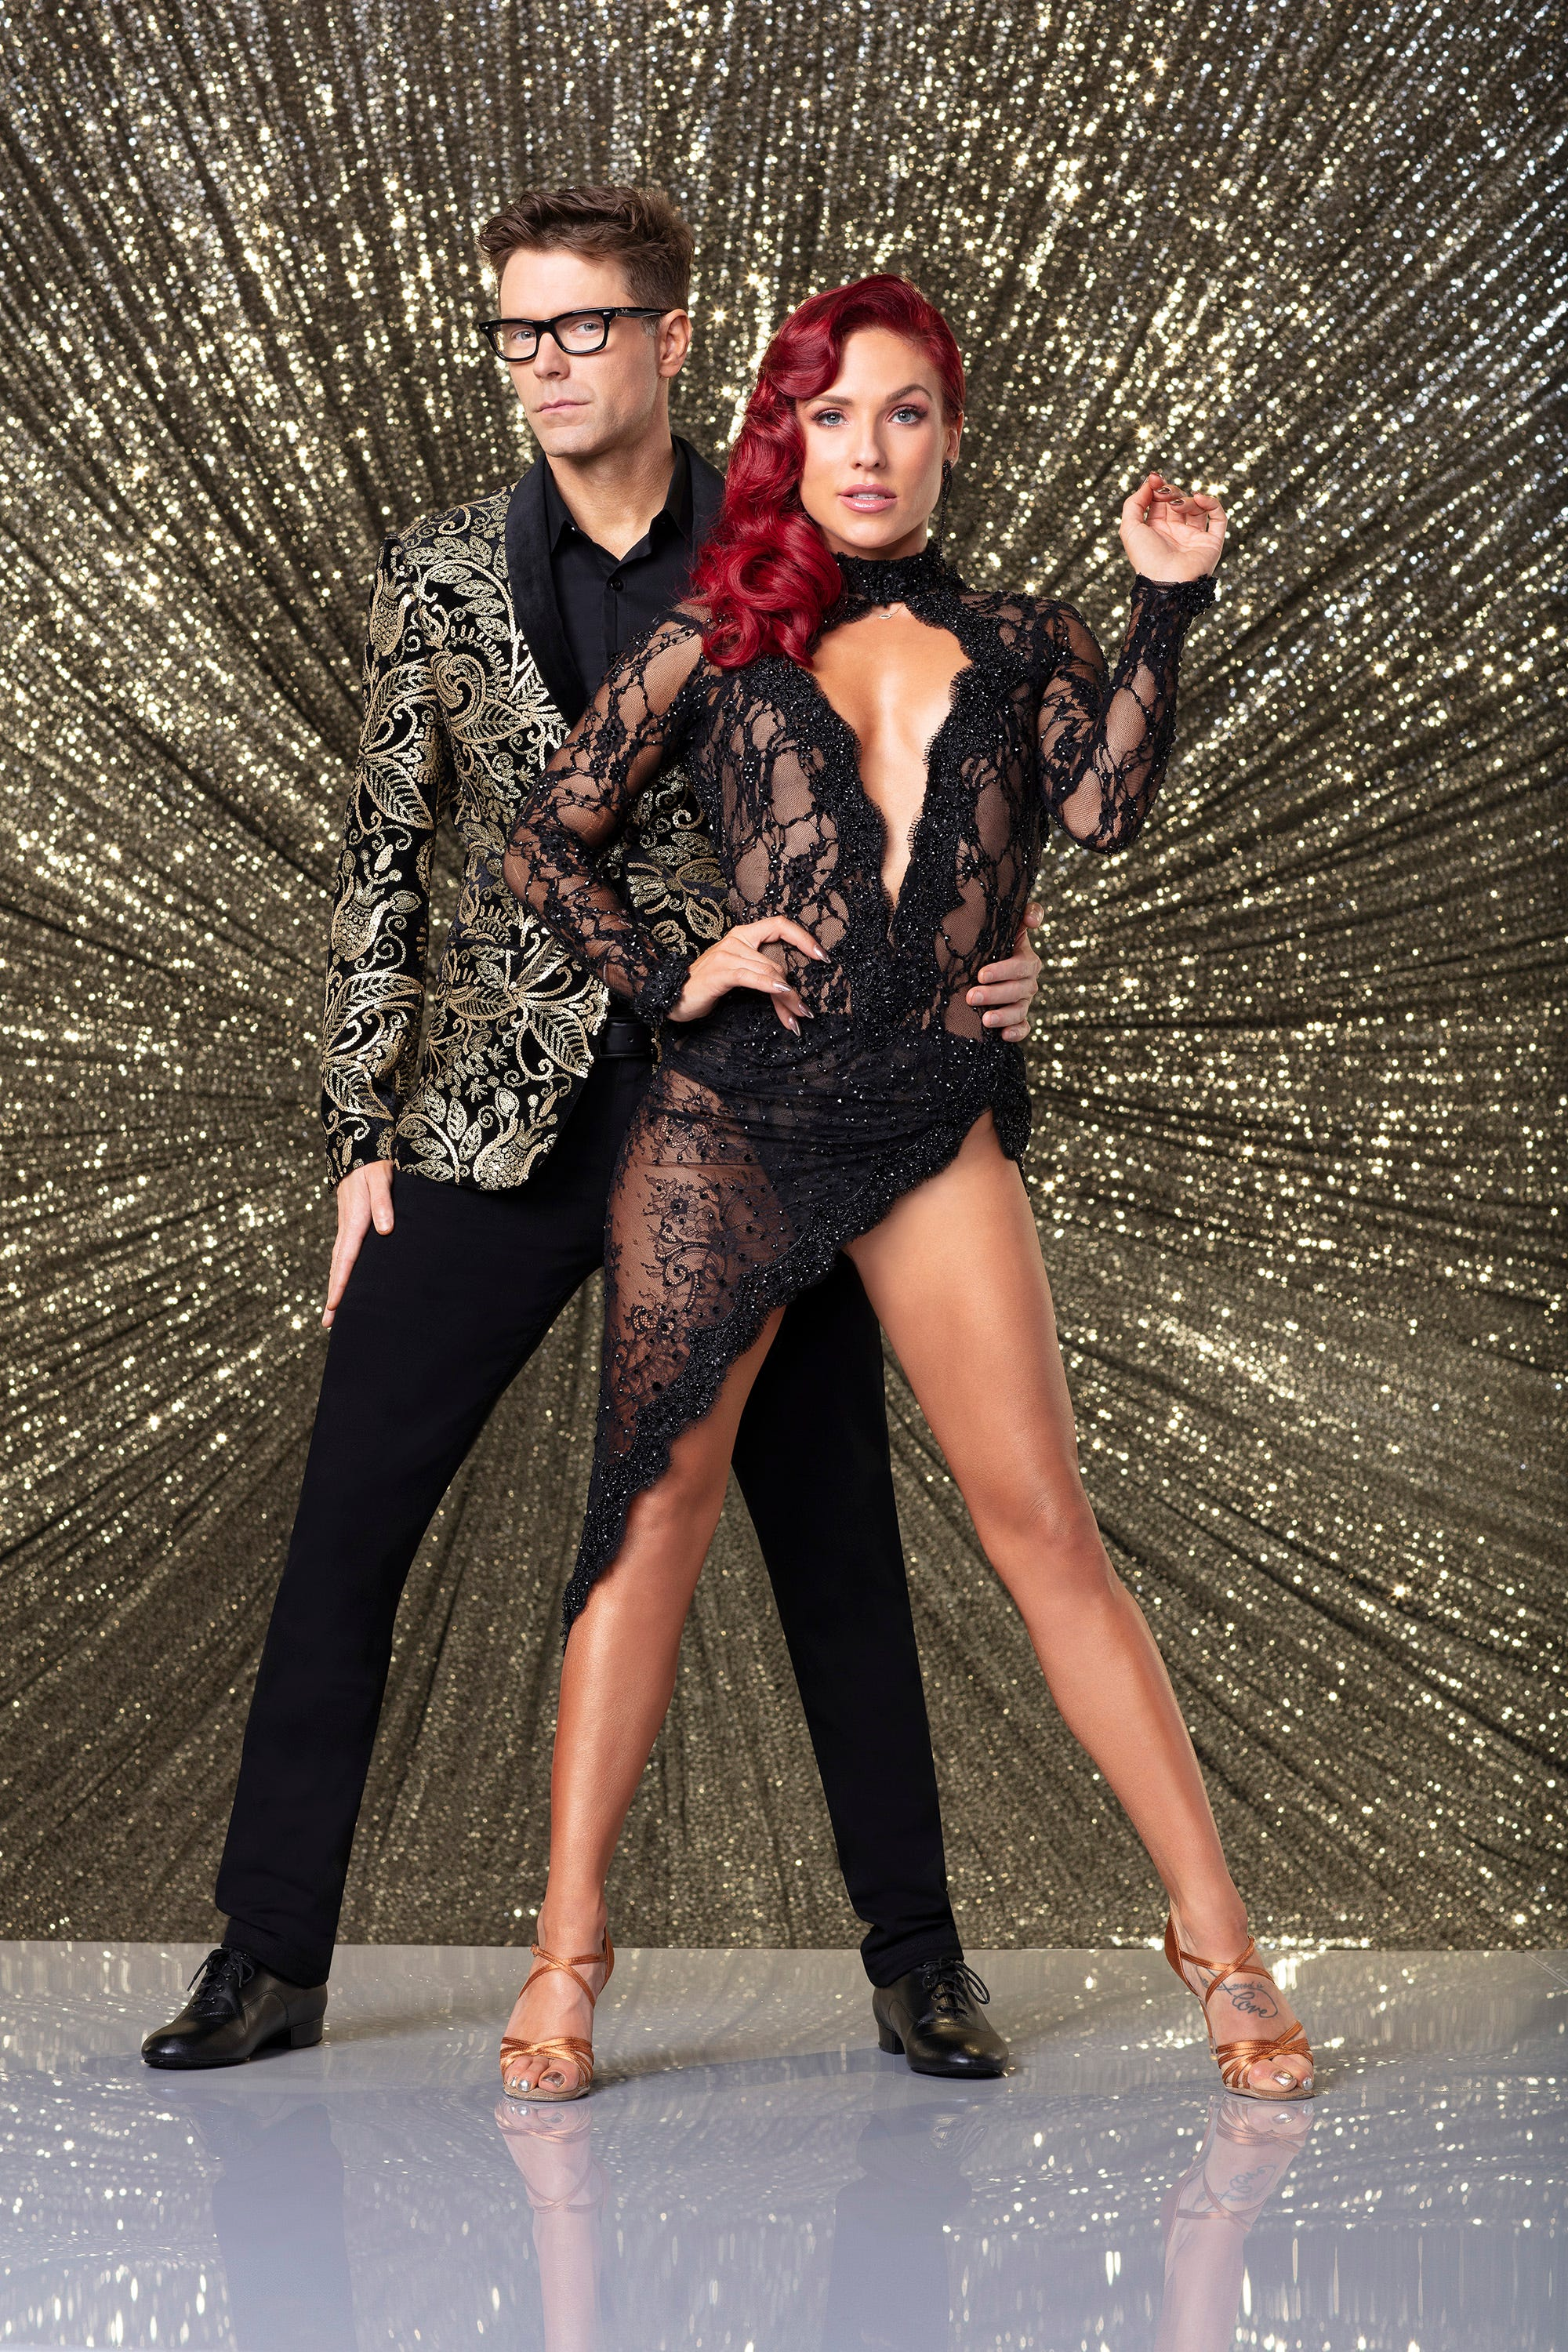 'Dancing with the Stars': Bobby Bones hurts shoulder with 'exquisitely demented' routine